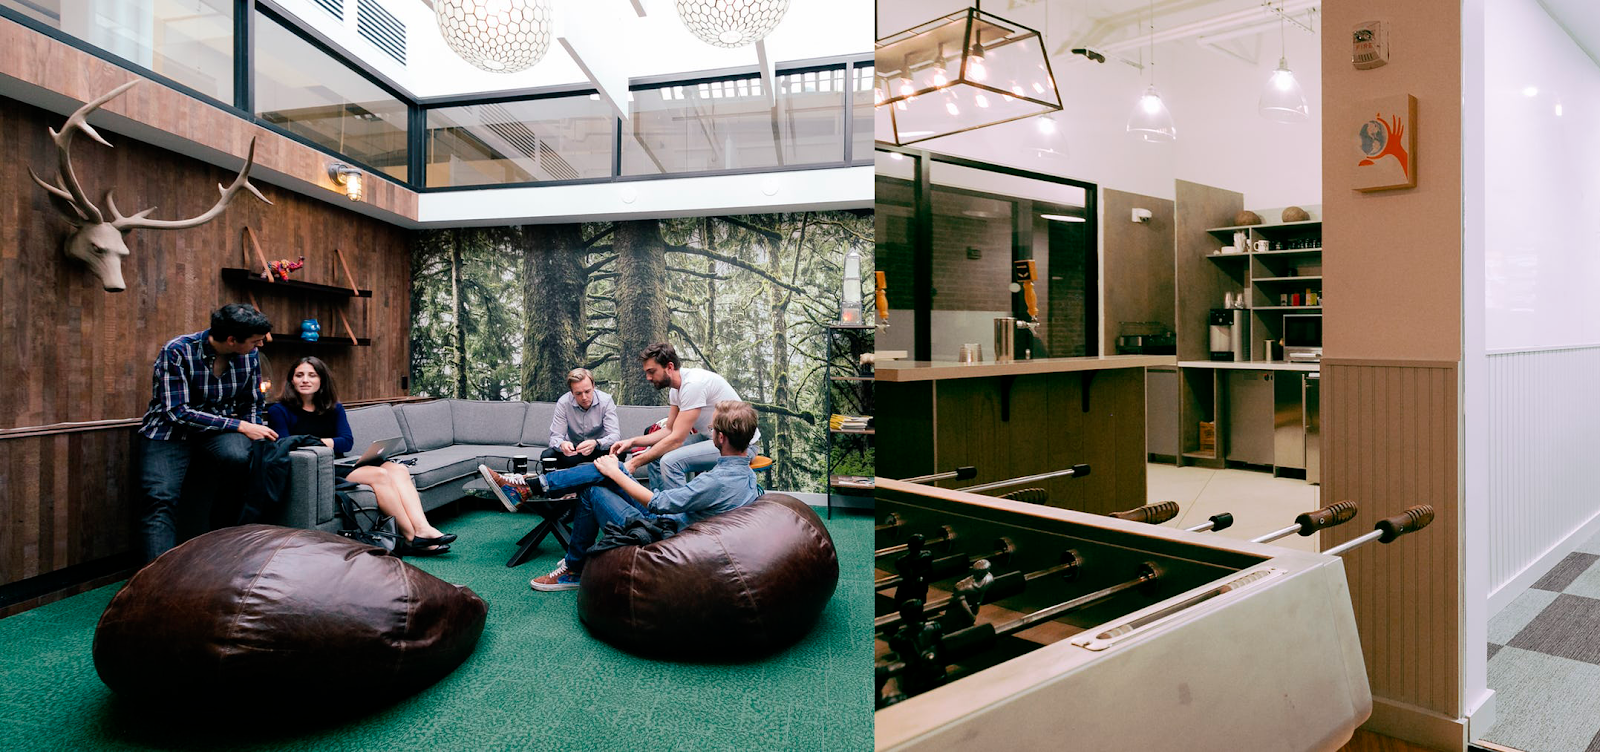 WeWork's Startup Culture